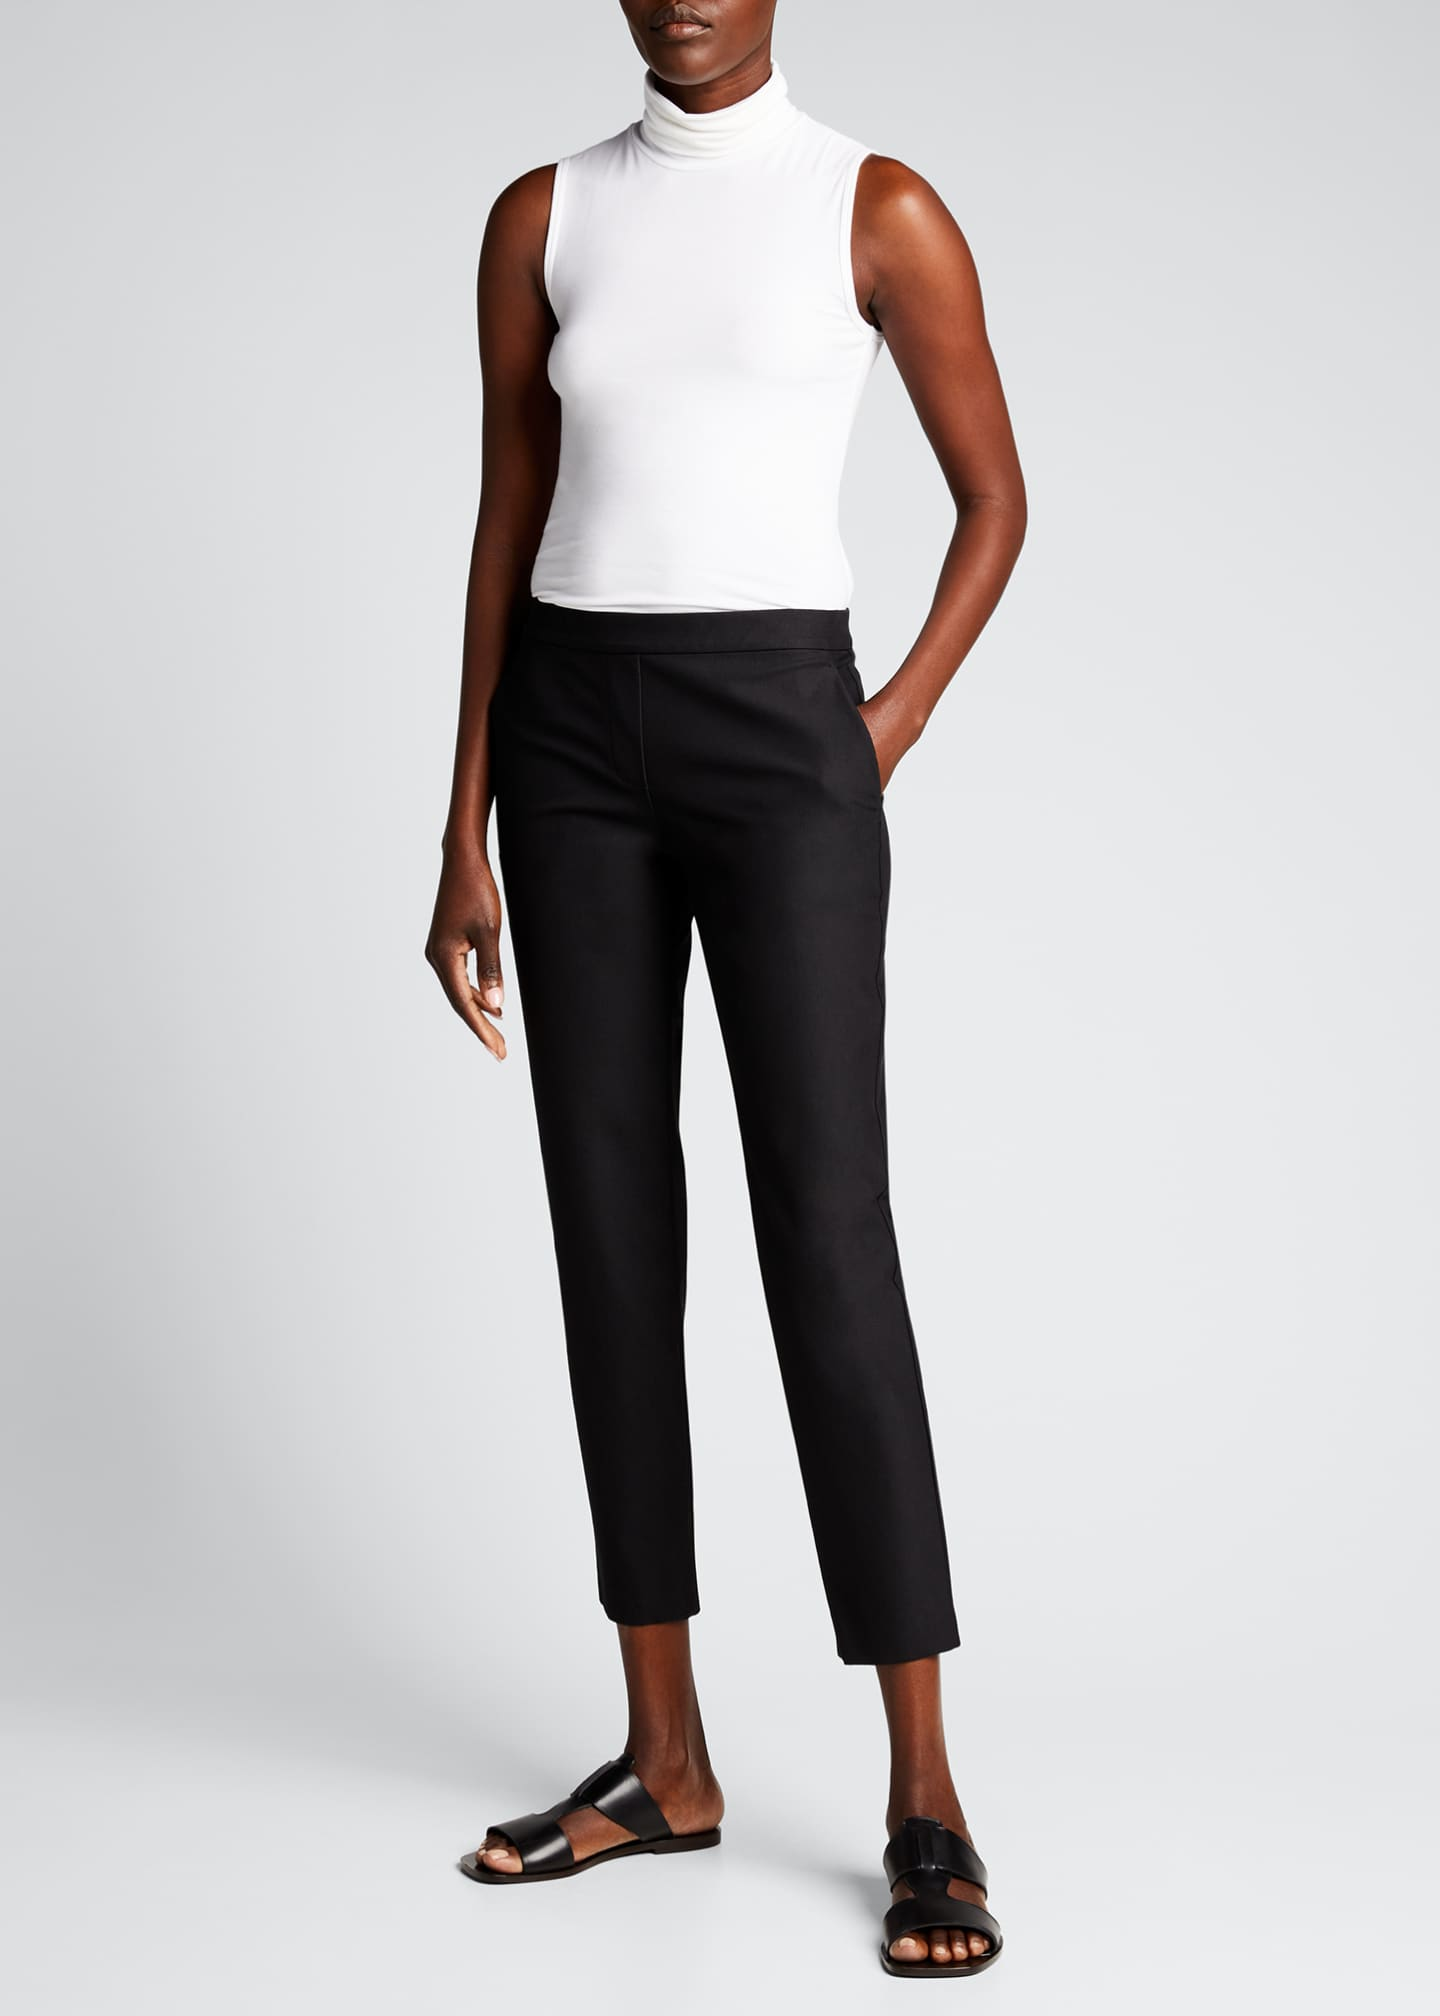 Image 1 of 4: Thaniel Approach Cropped Slim Pants, Black